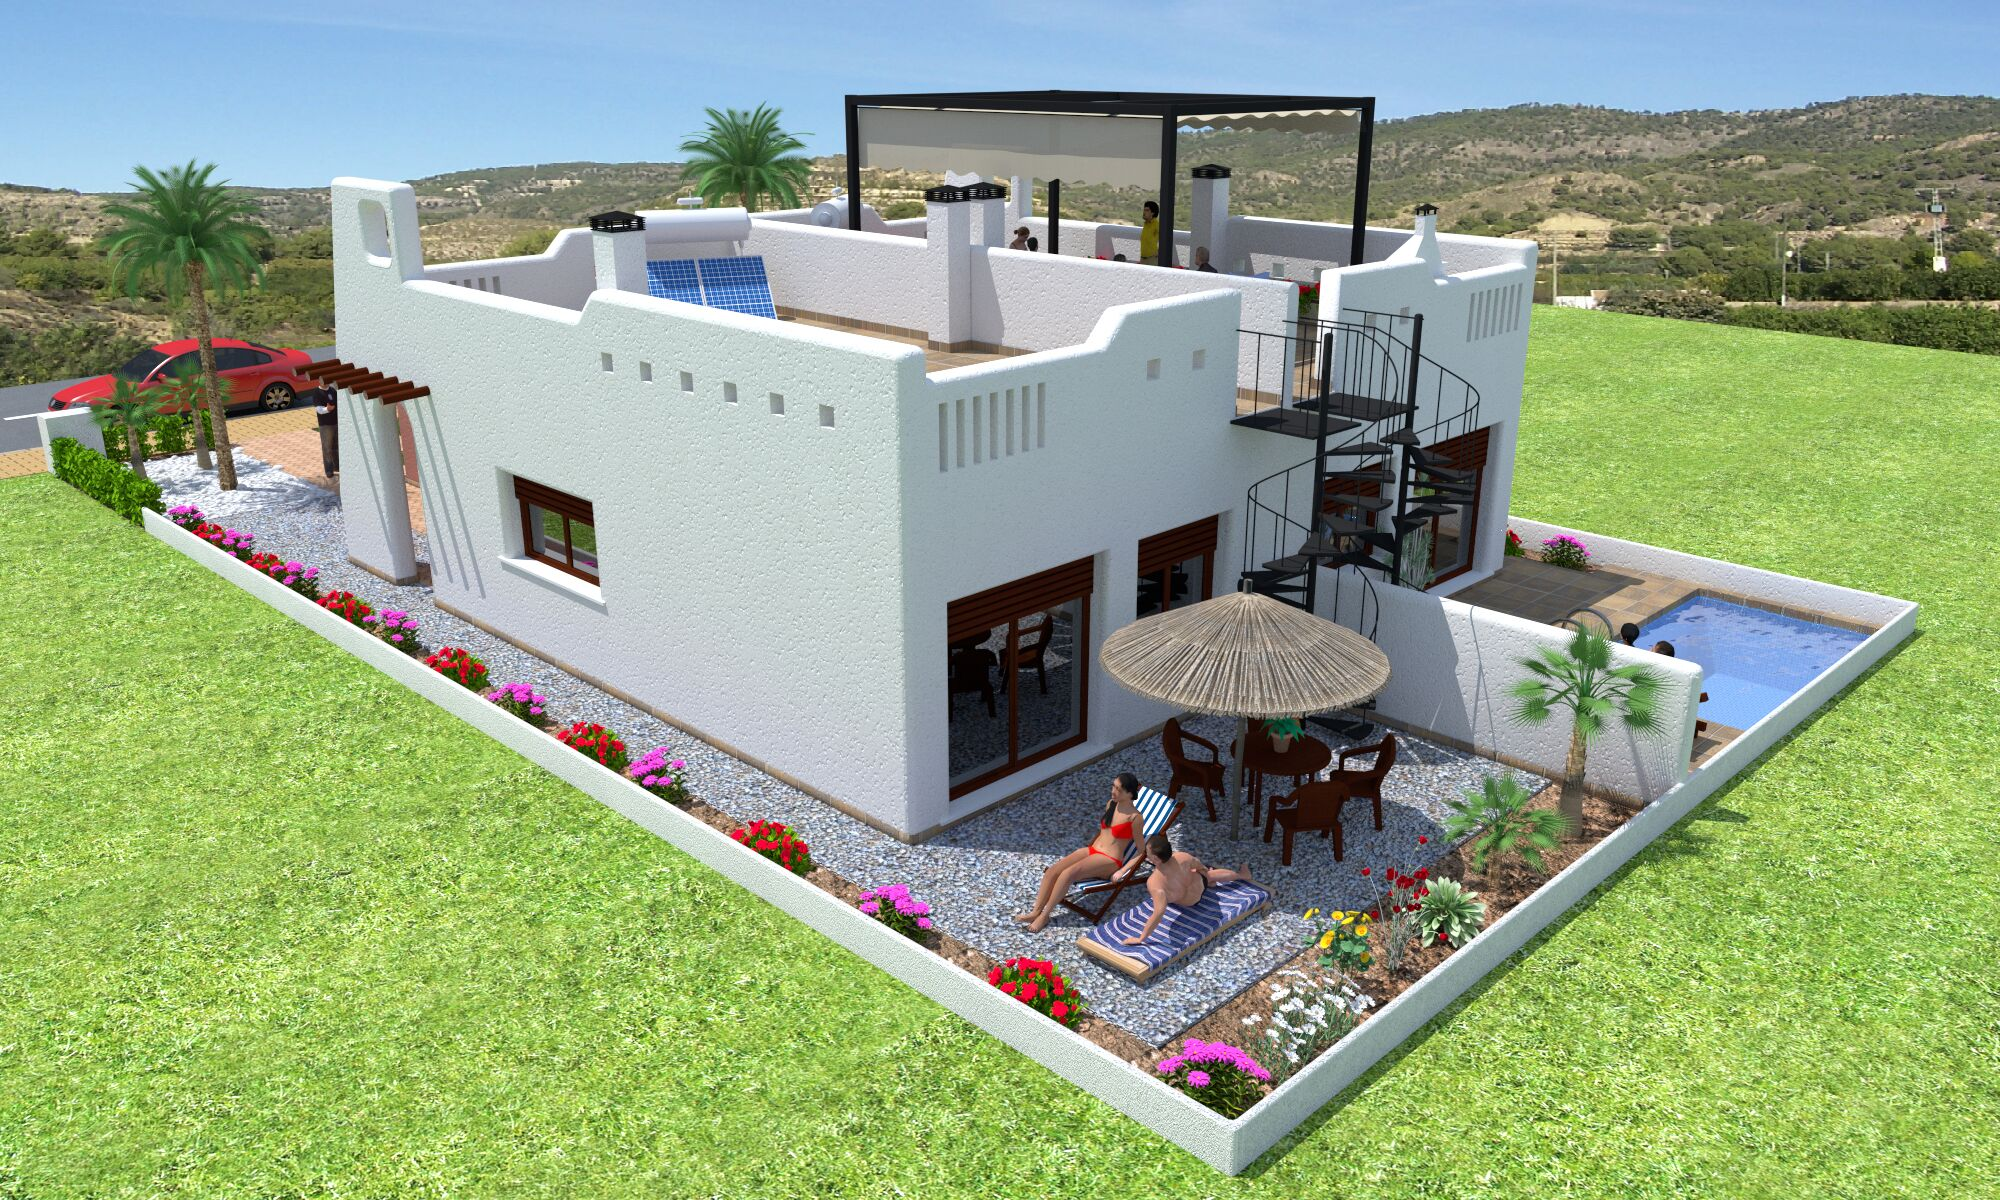 2 bedroom villa For Sale in Los Alcazares - Main Image